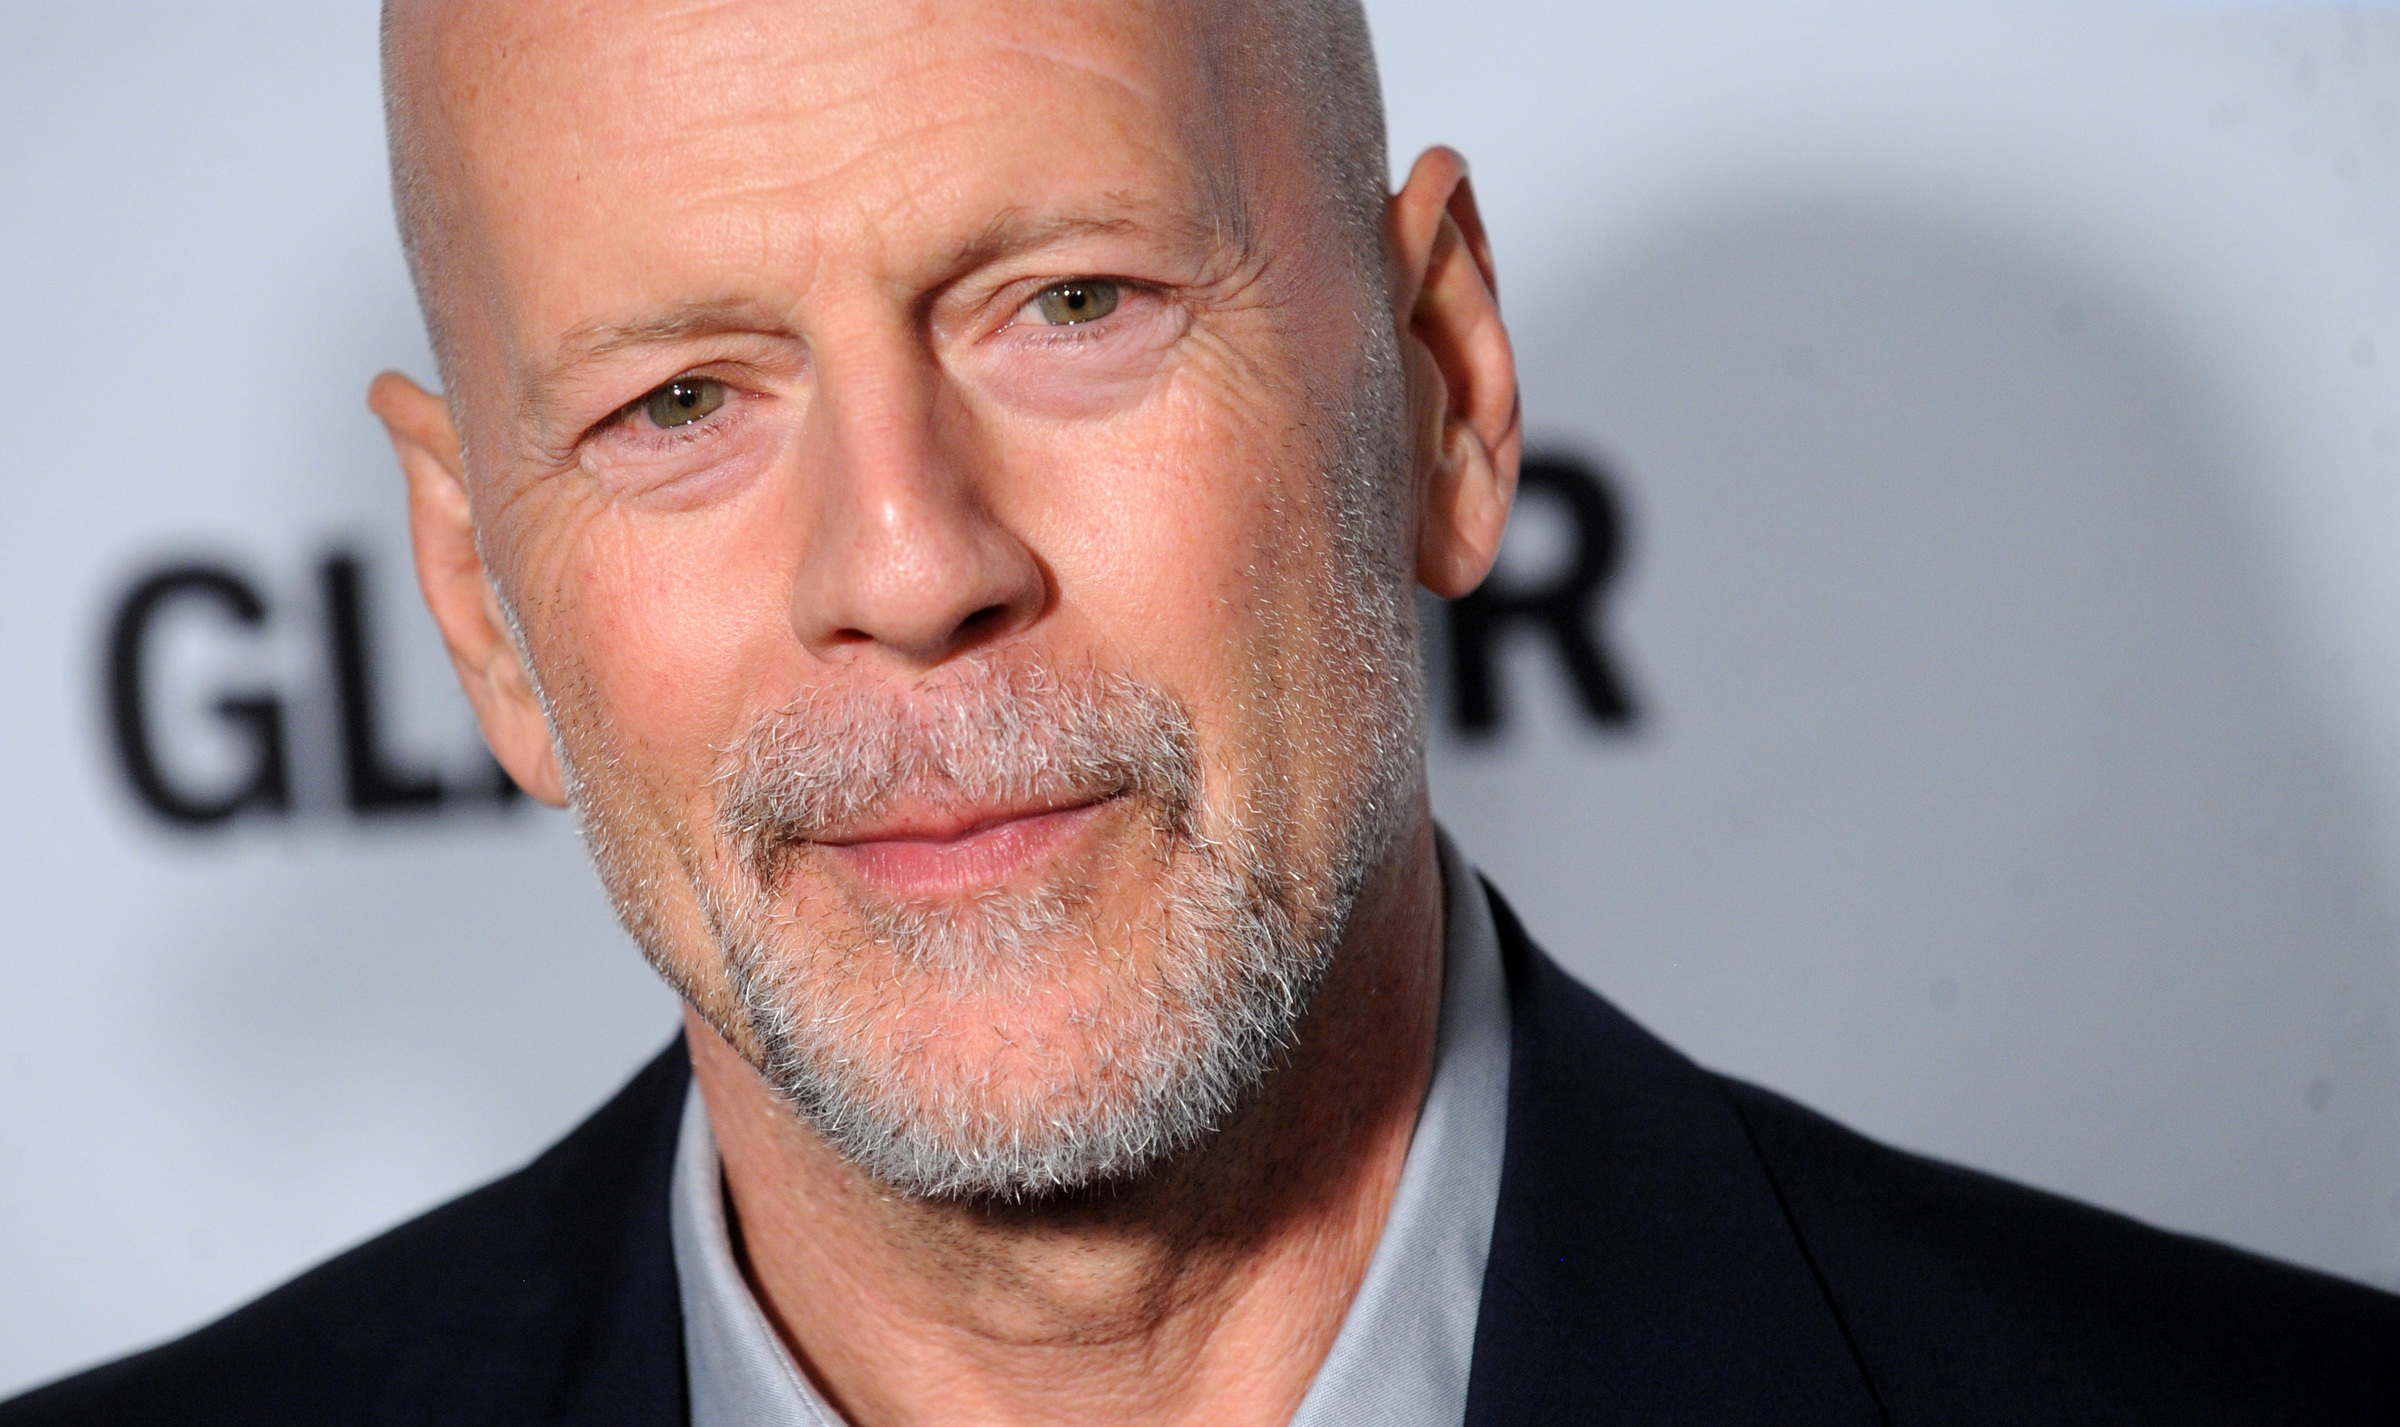 Bruce Willis attends the 2014 Glamour Women Of The Year Awards at Carnegie Hall on November 10, 2014 in New York City. (Photo by NurPhoto.com)